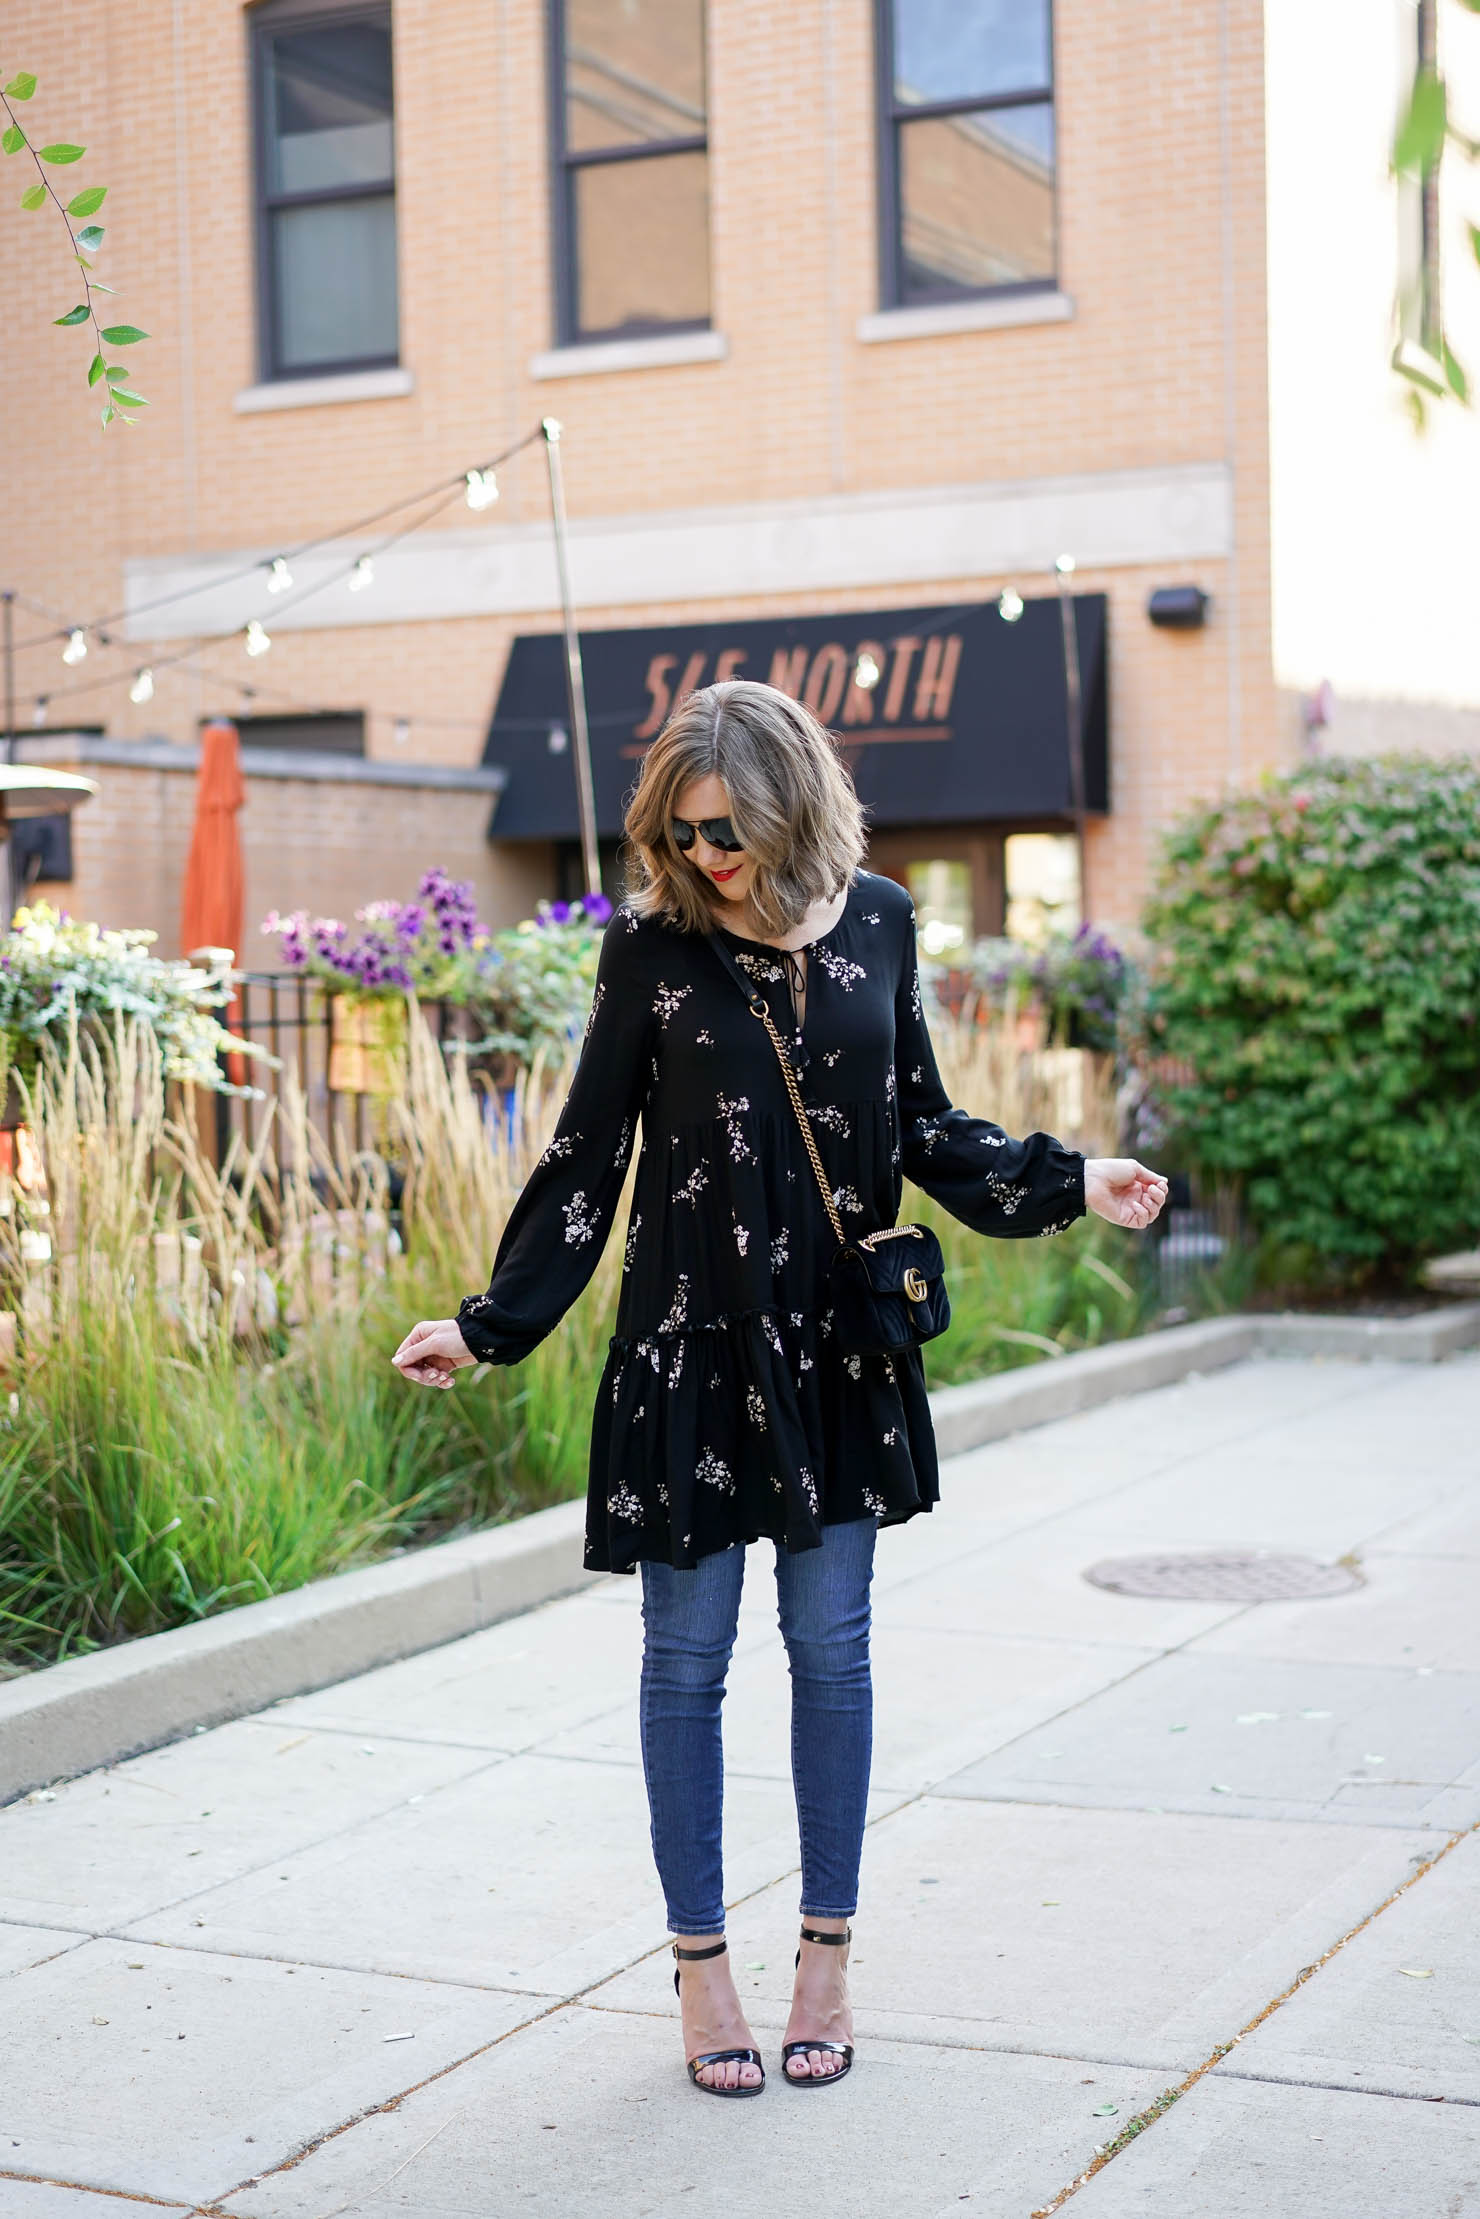 how to wear a dress with jeans, how to style a dress with jeans boho chic fall outfit, how to shop for age appropriate clothes at forever 21